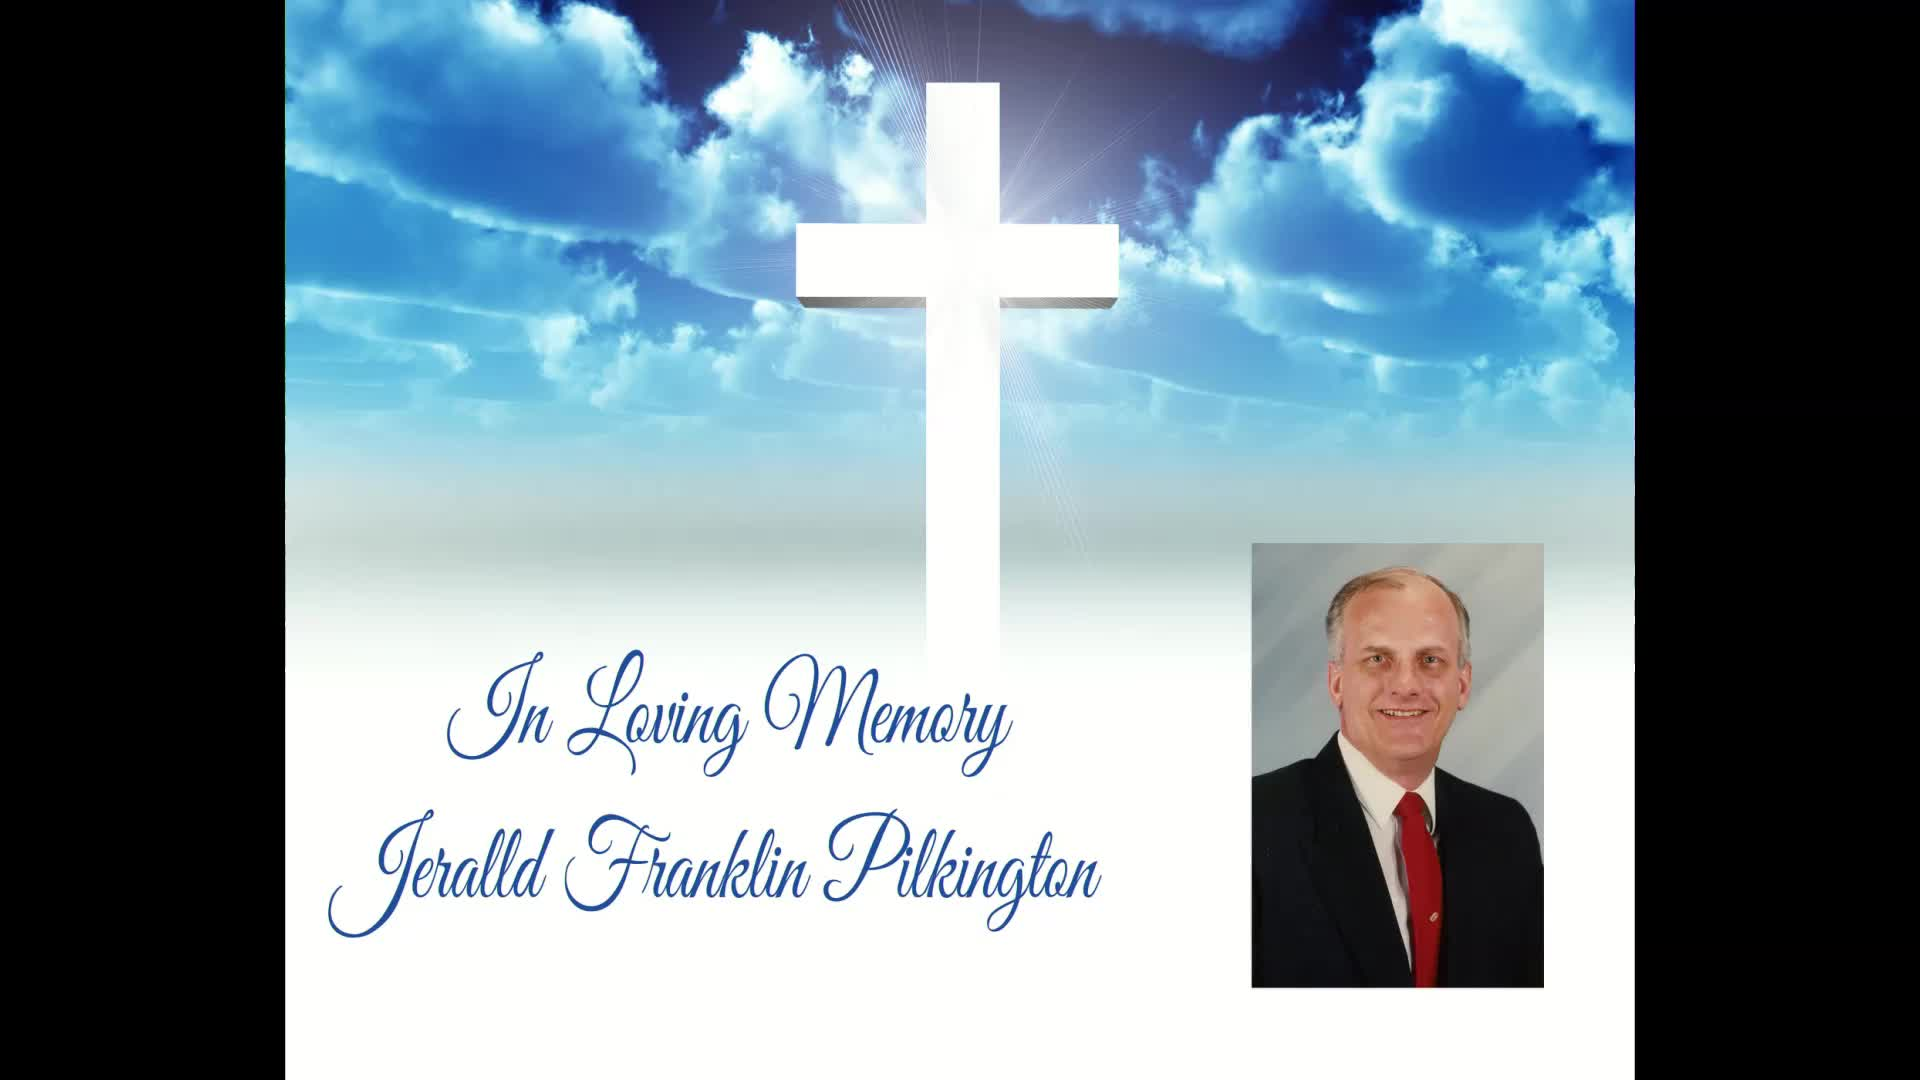 Jerry Pilkingtons Memorial Service